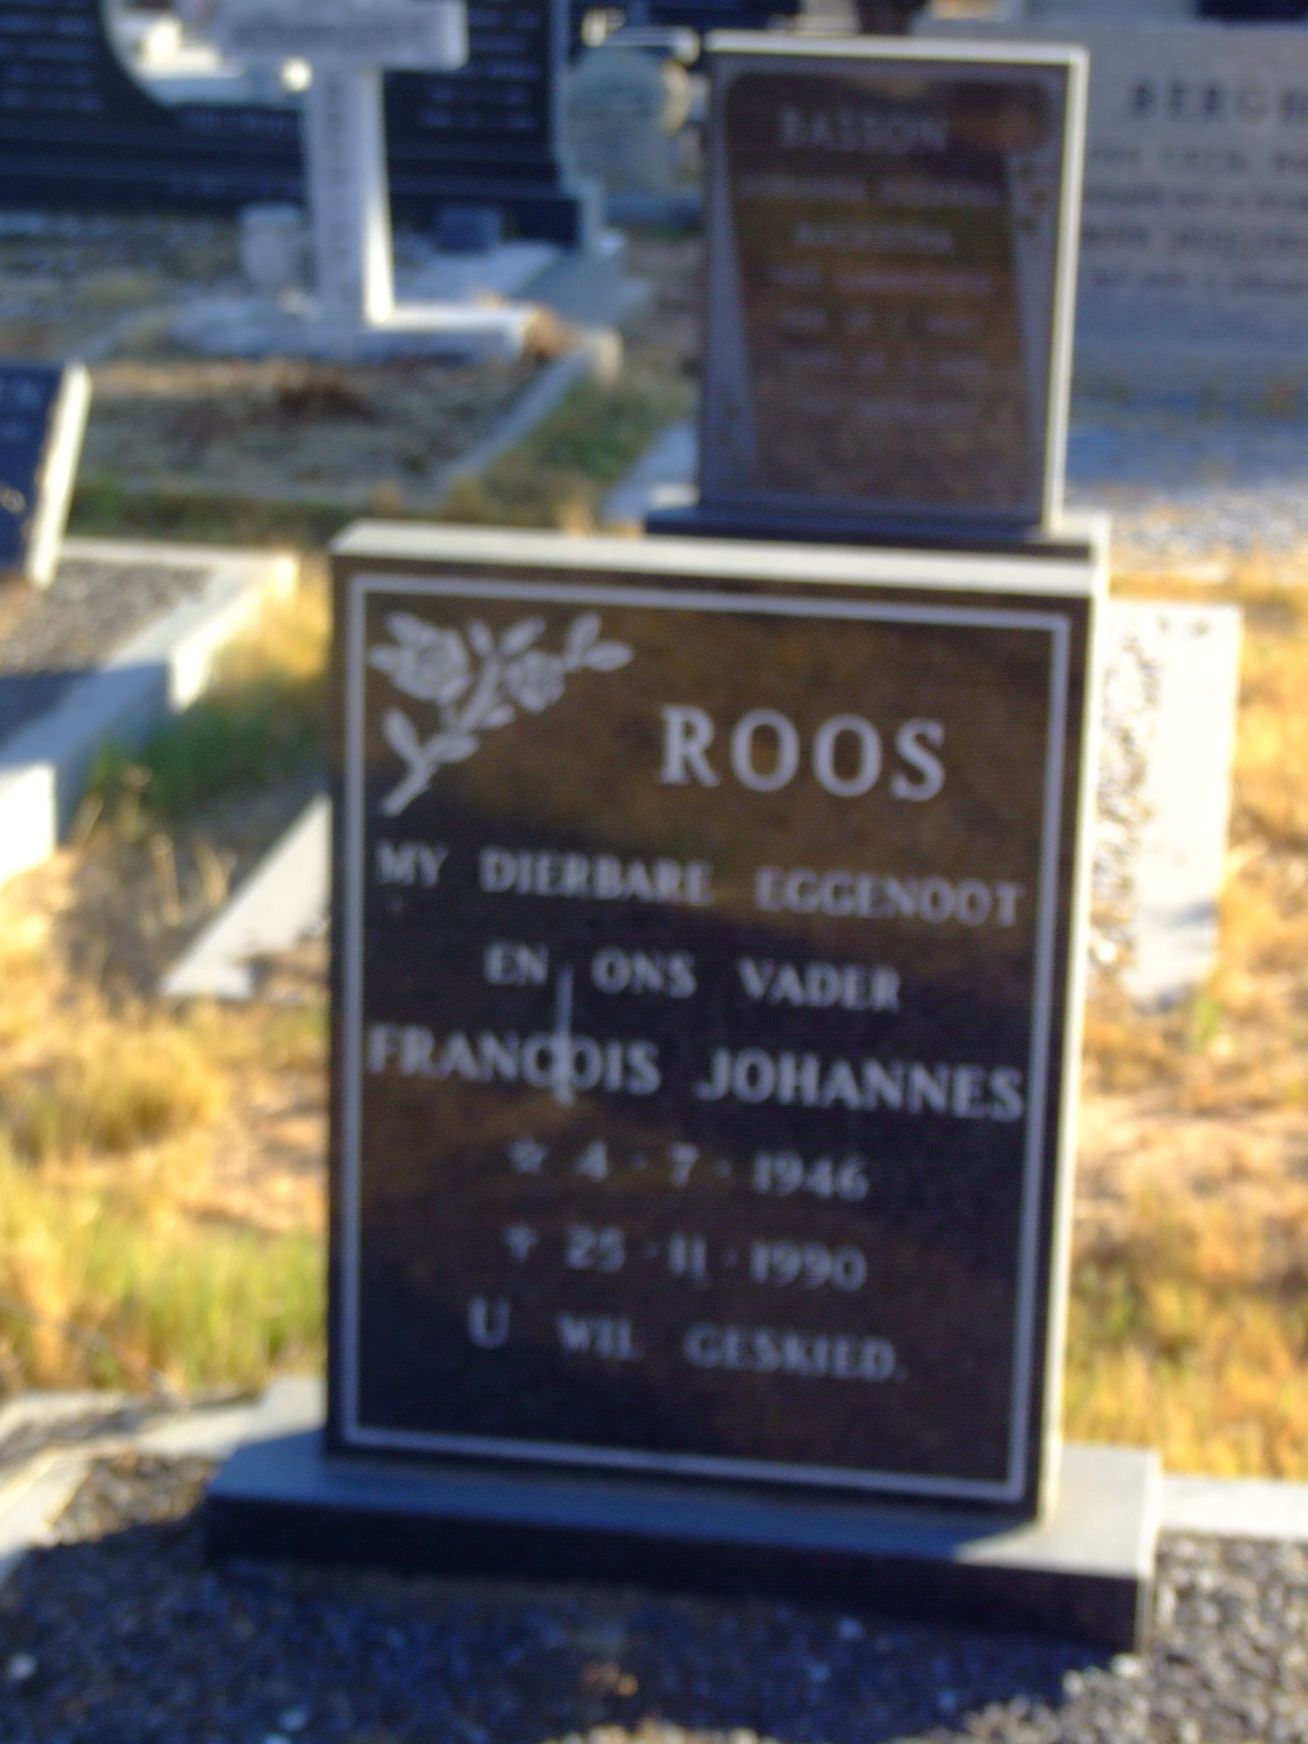 Roos, Francois